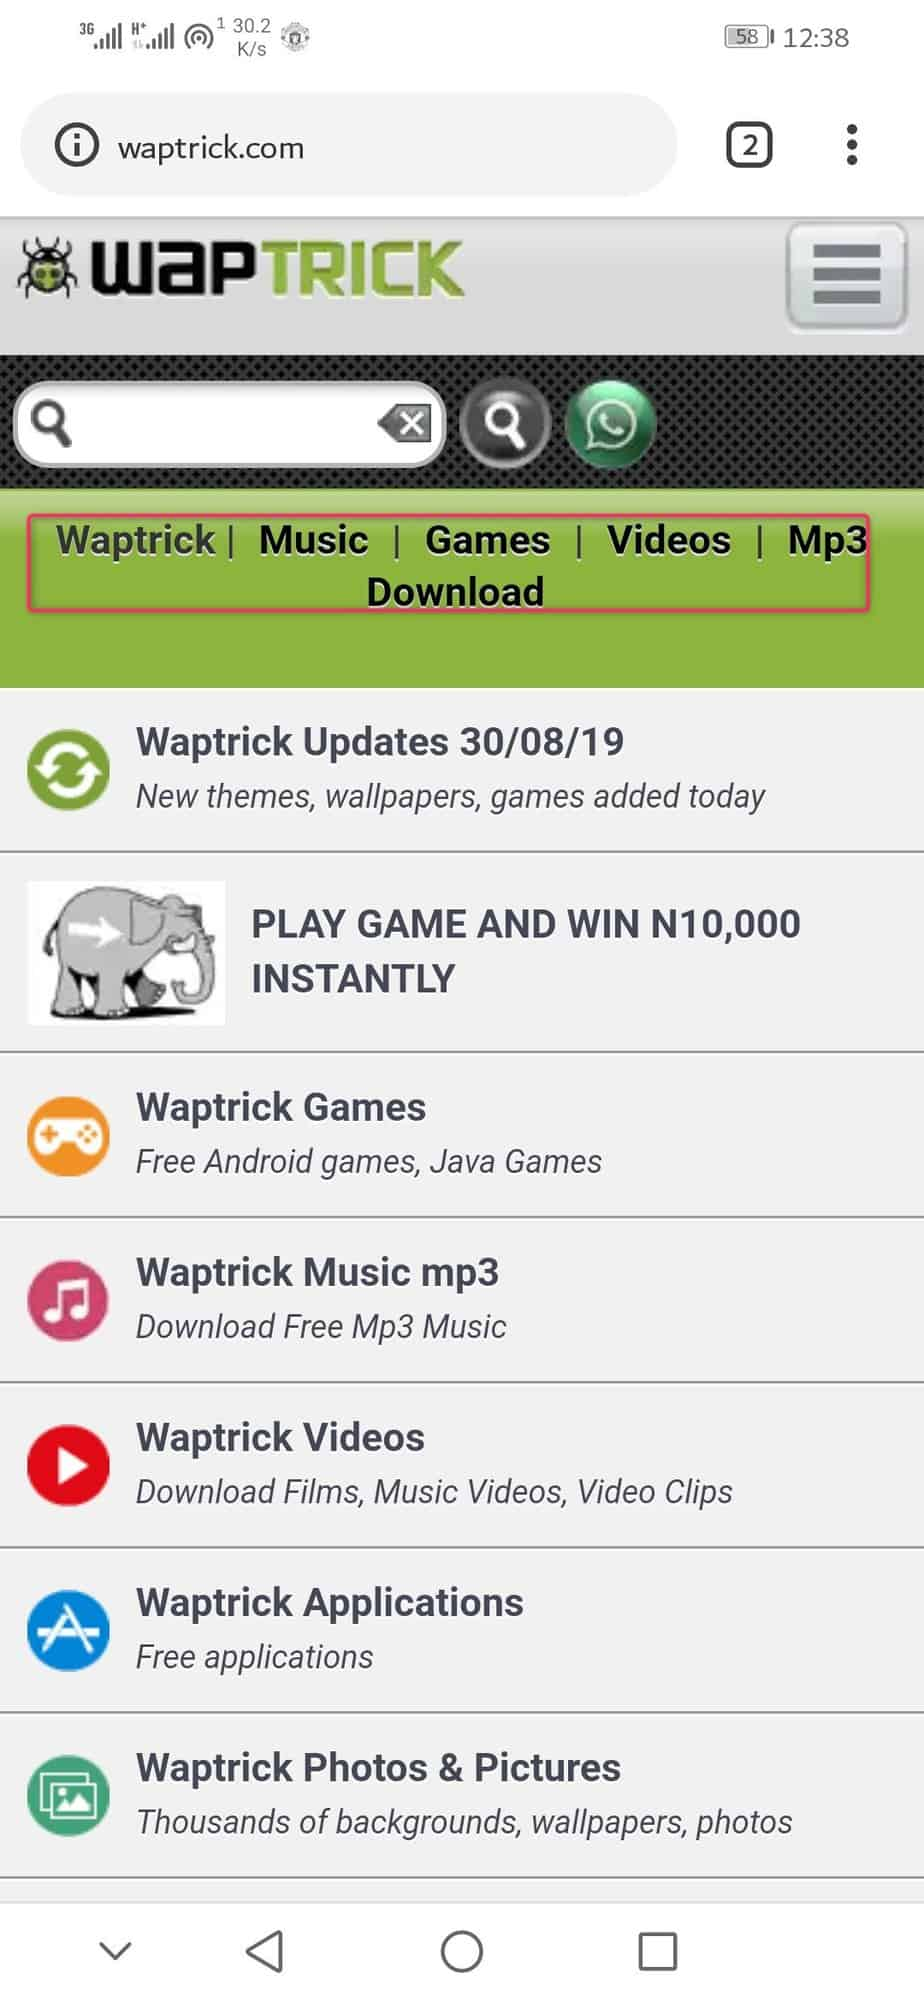 Imágenes de Waptrick Io Mp3 Video Game Themes Free Download